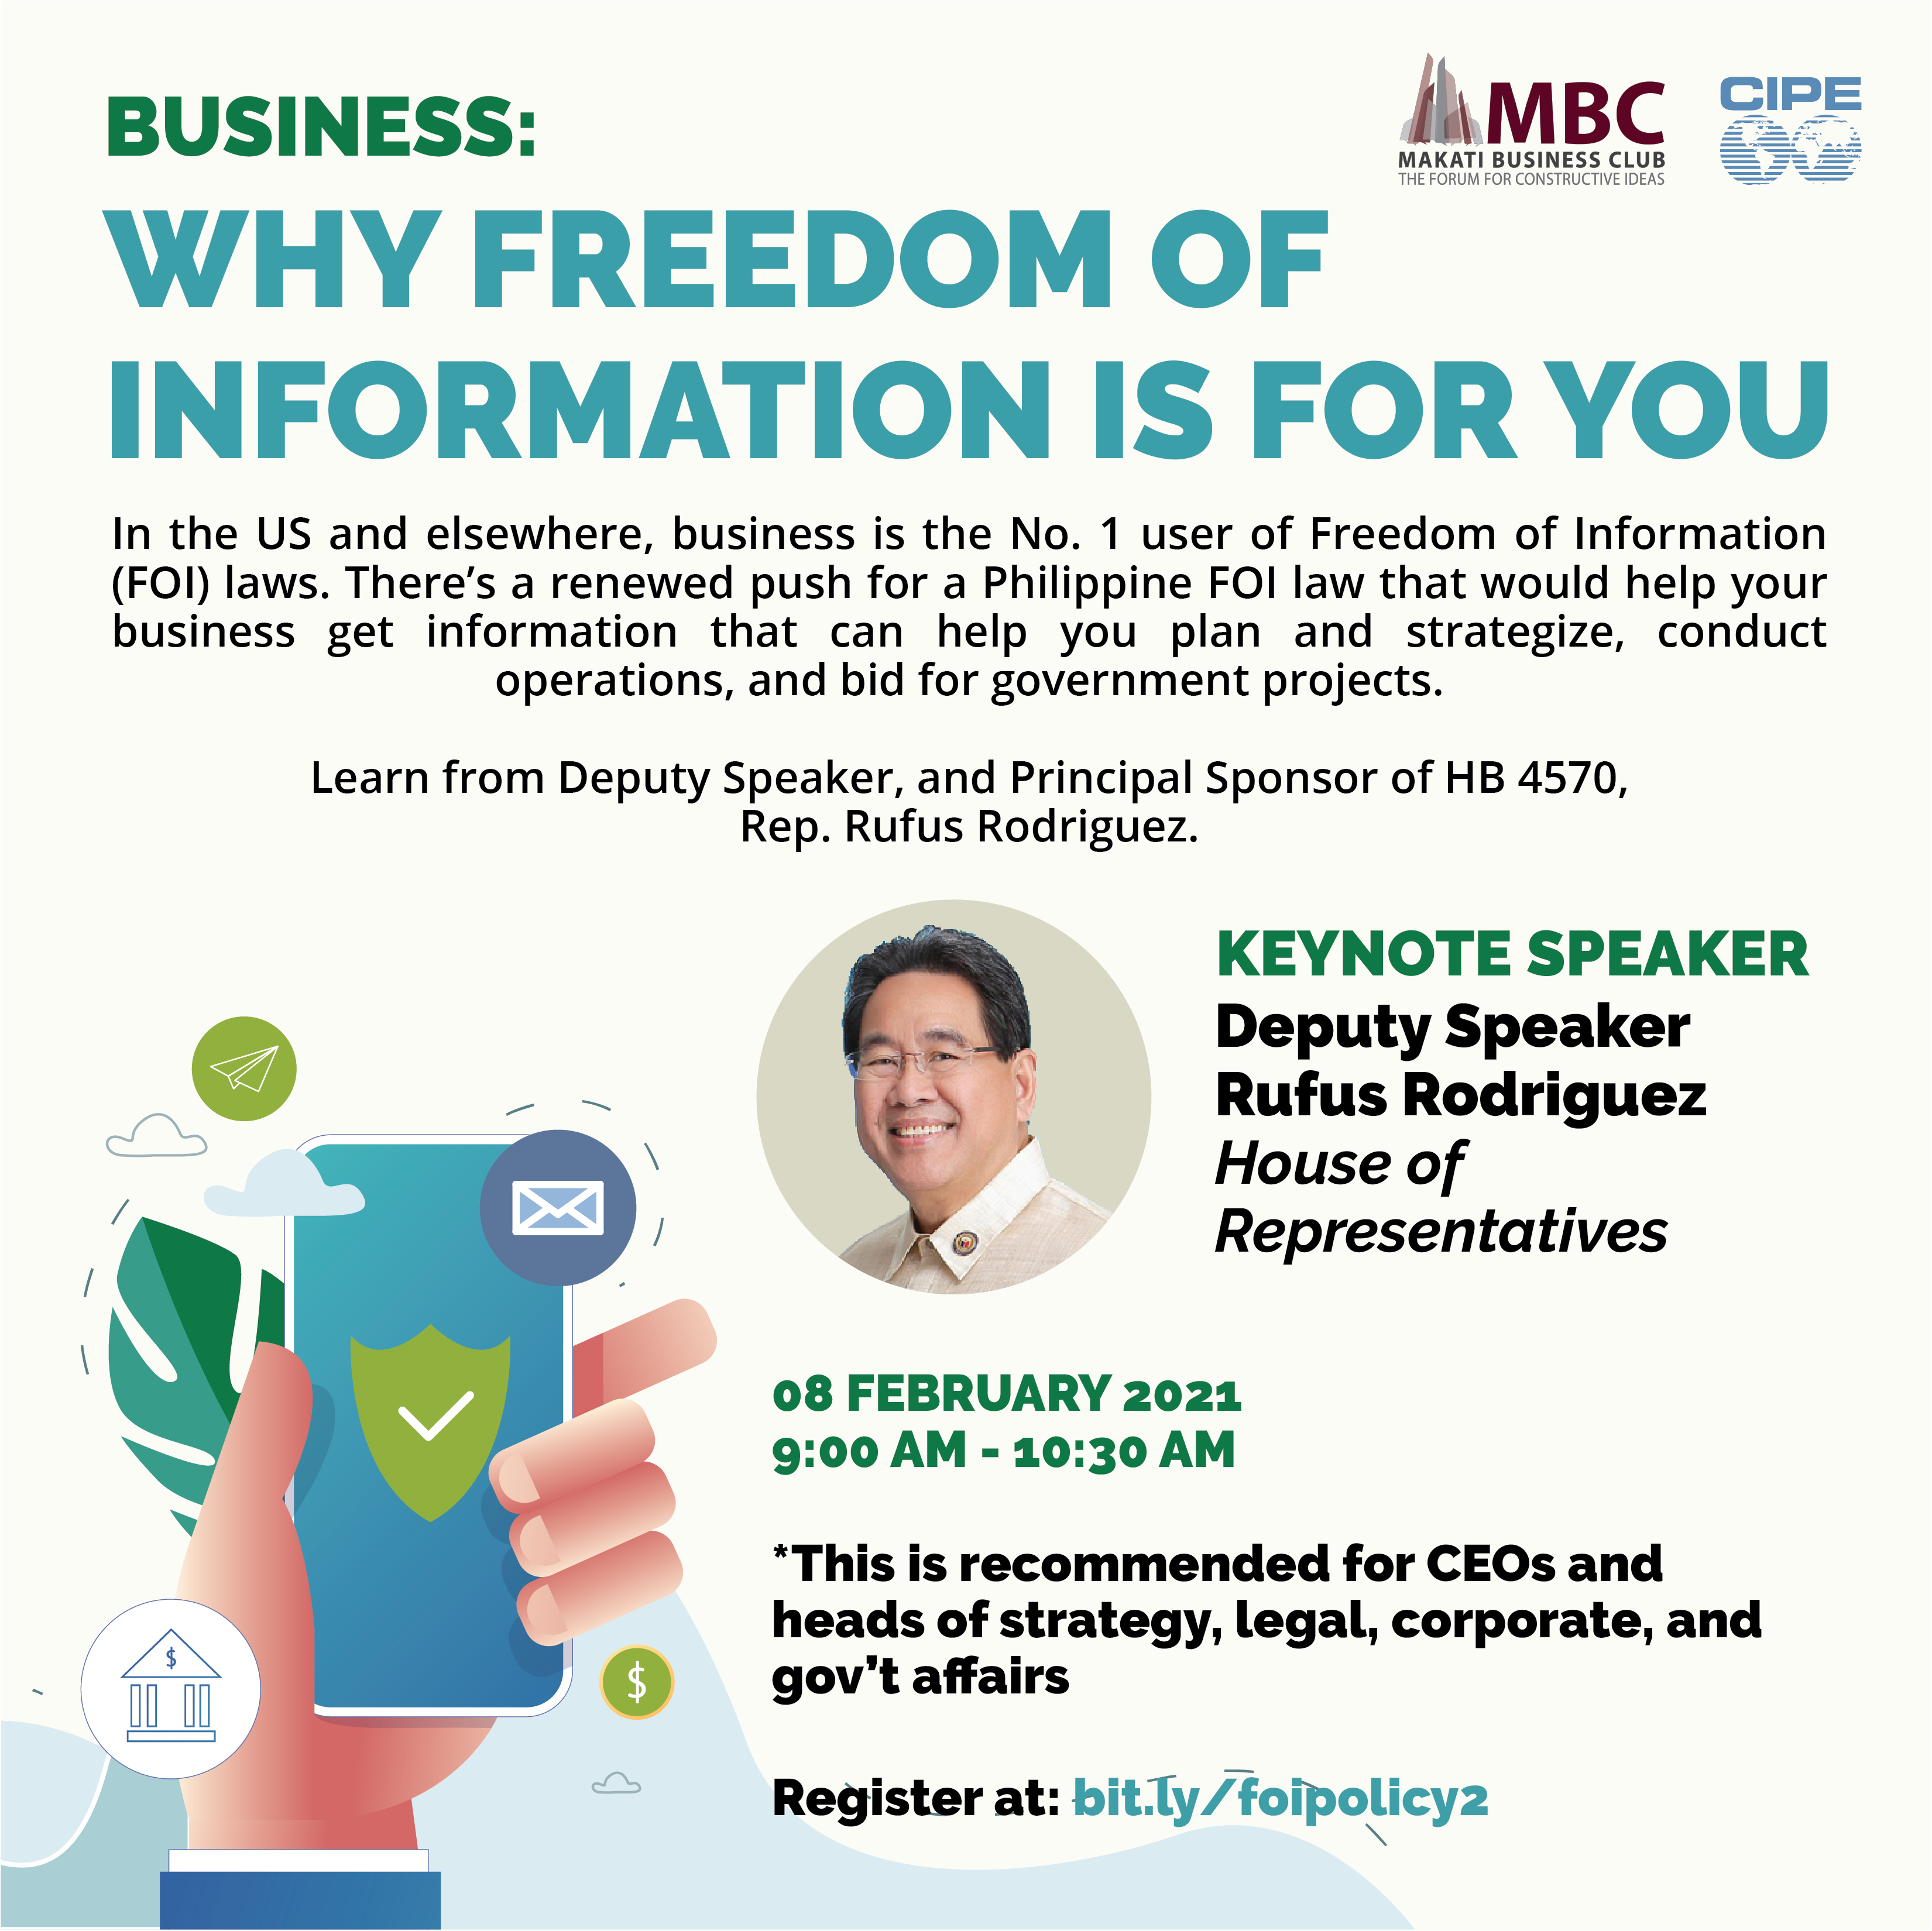 BUSINESS: WHY FREEDOM OF INFORMATION IS FOR YOU